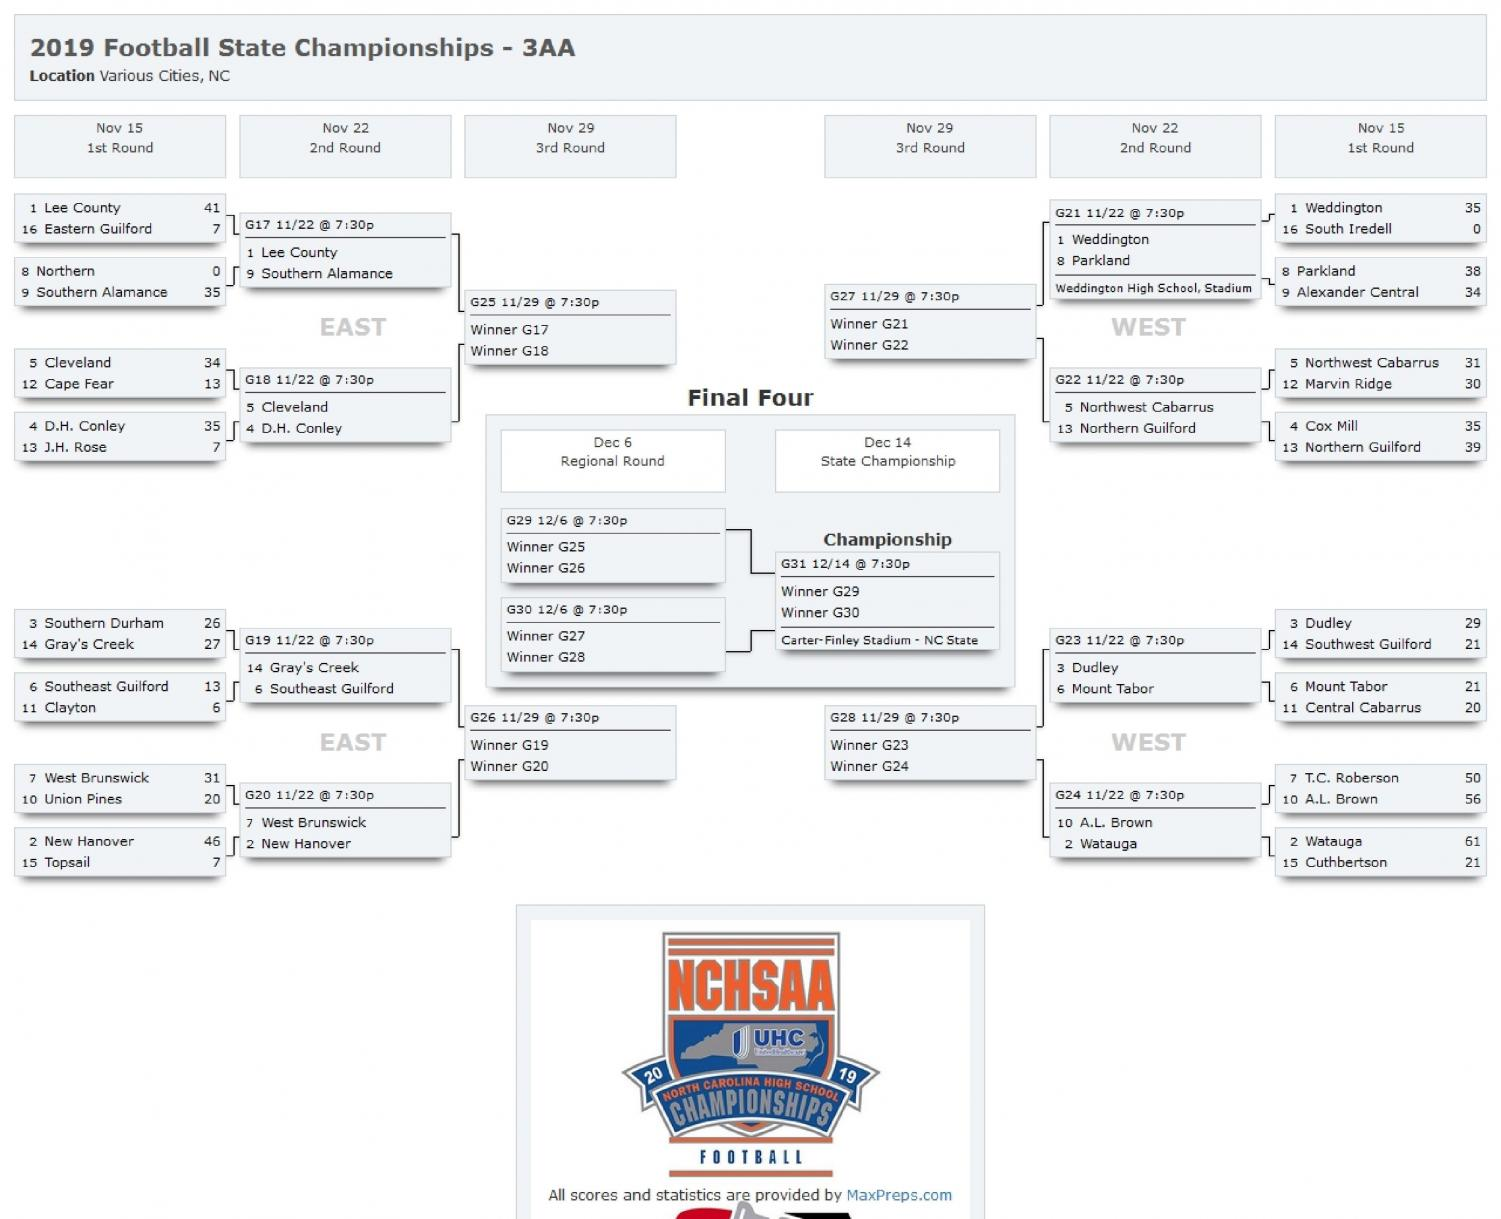 The NCHSSA brackets place Weddington as the #1 seed.